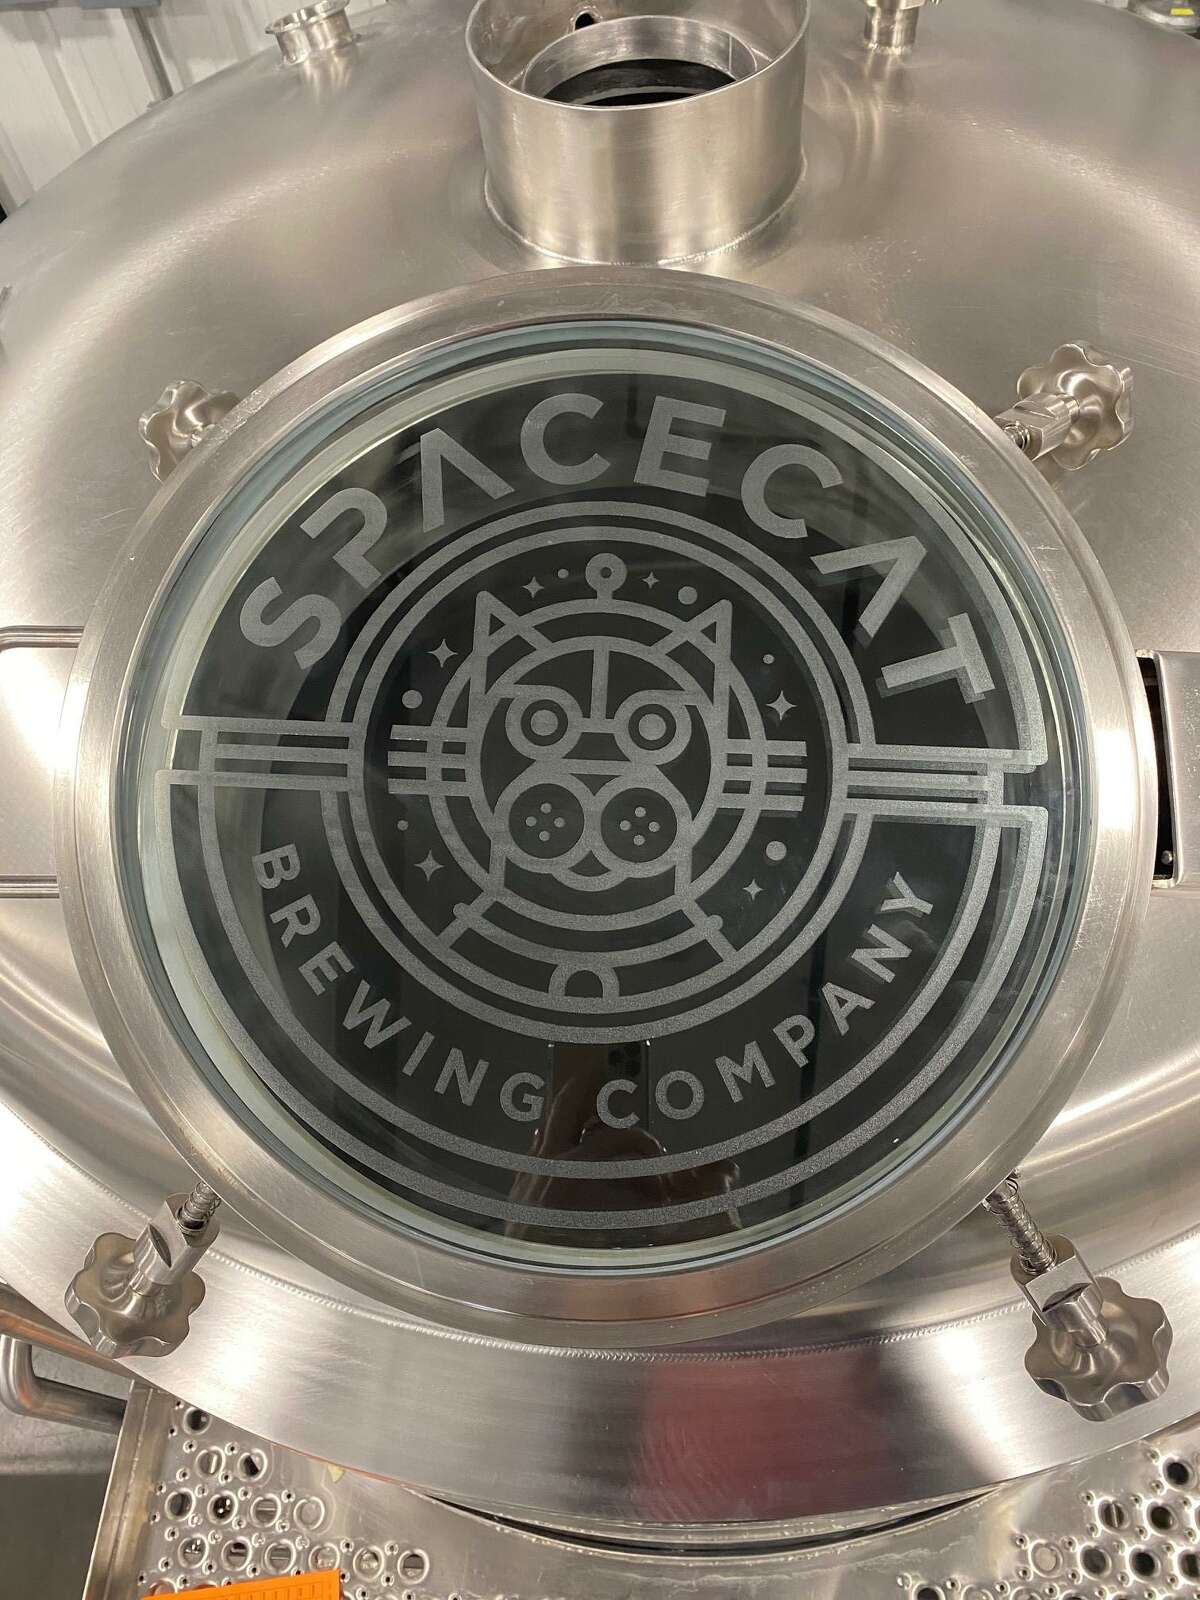 Spacecat Brewing Co. will open in South Norwalk in May.